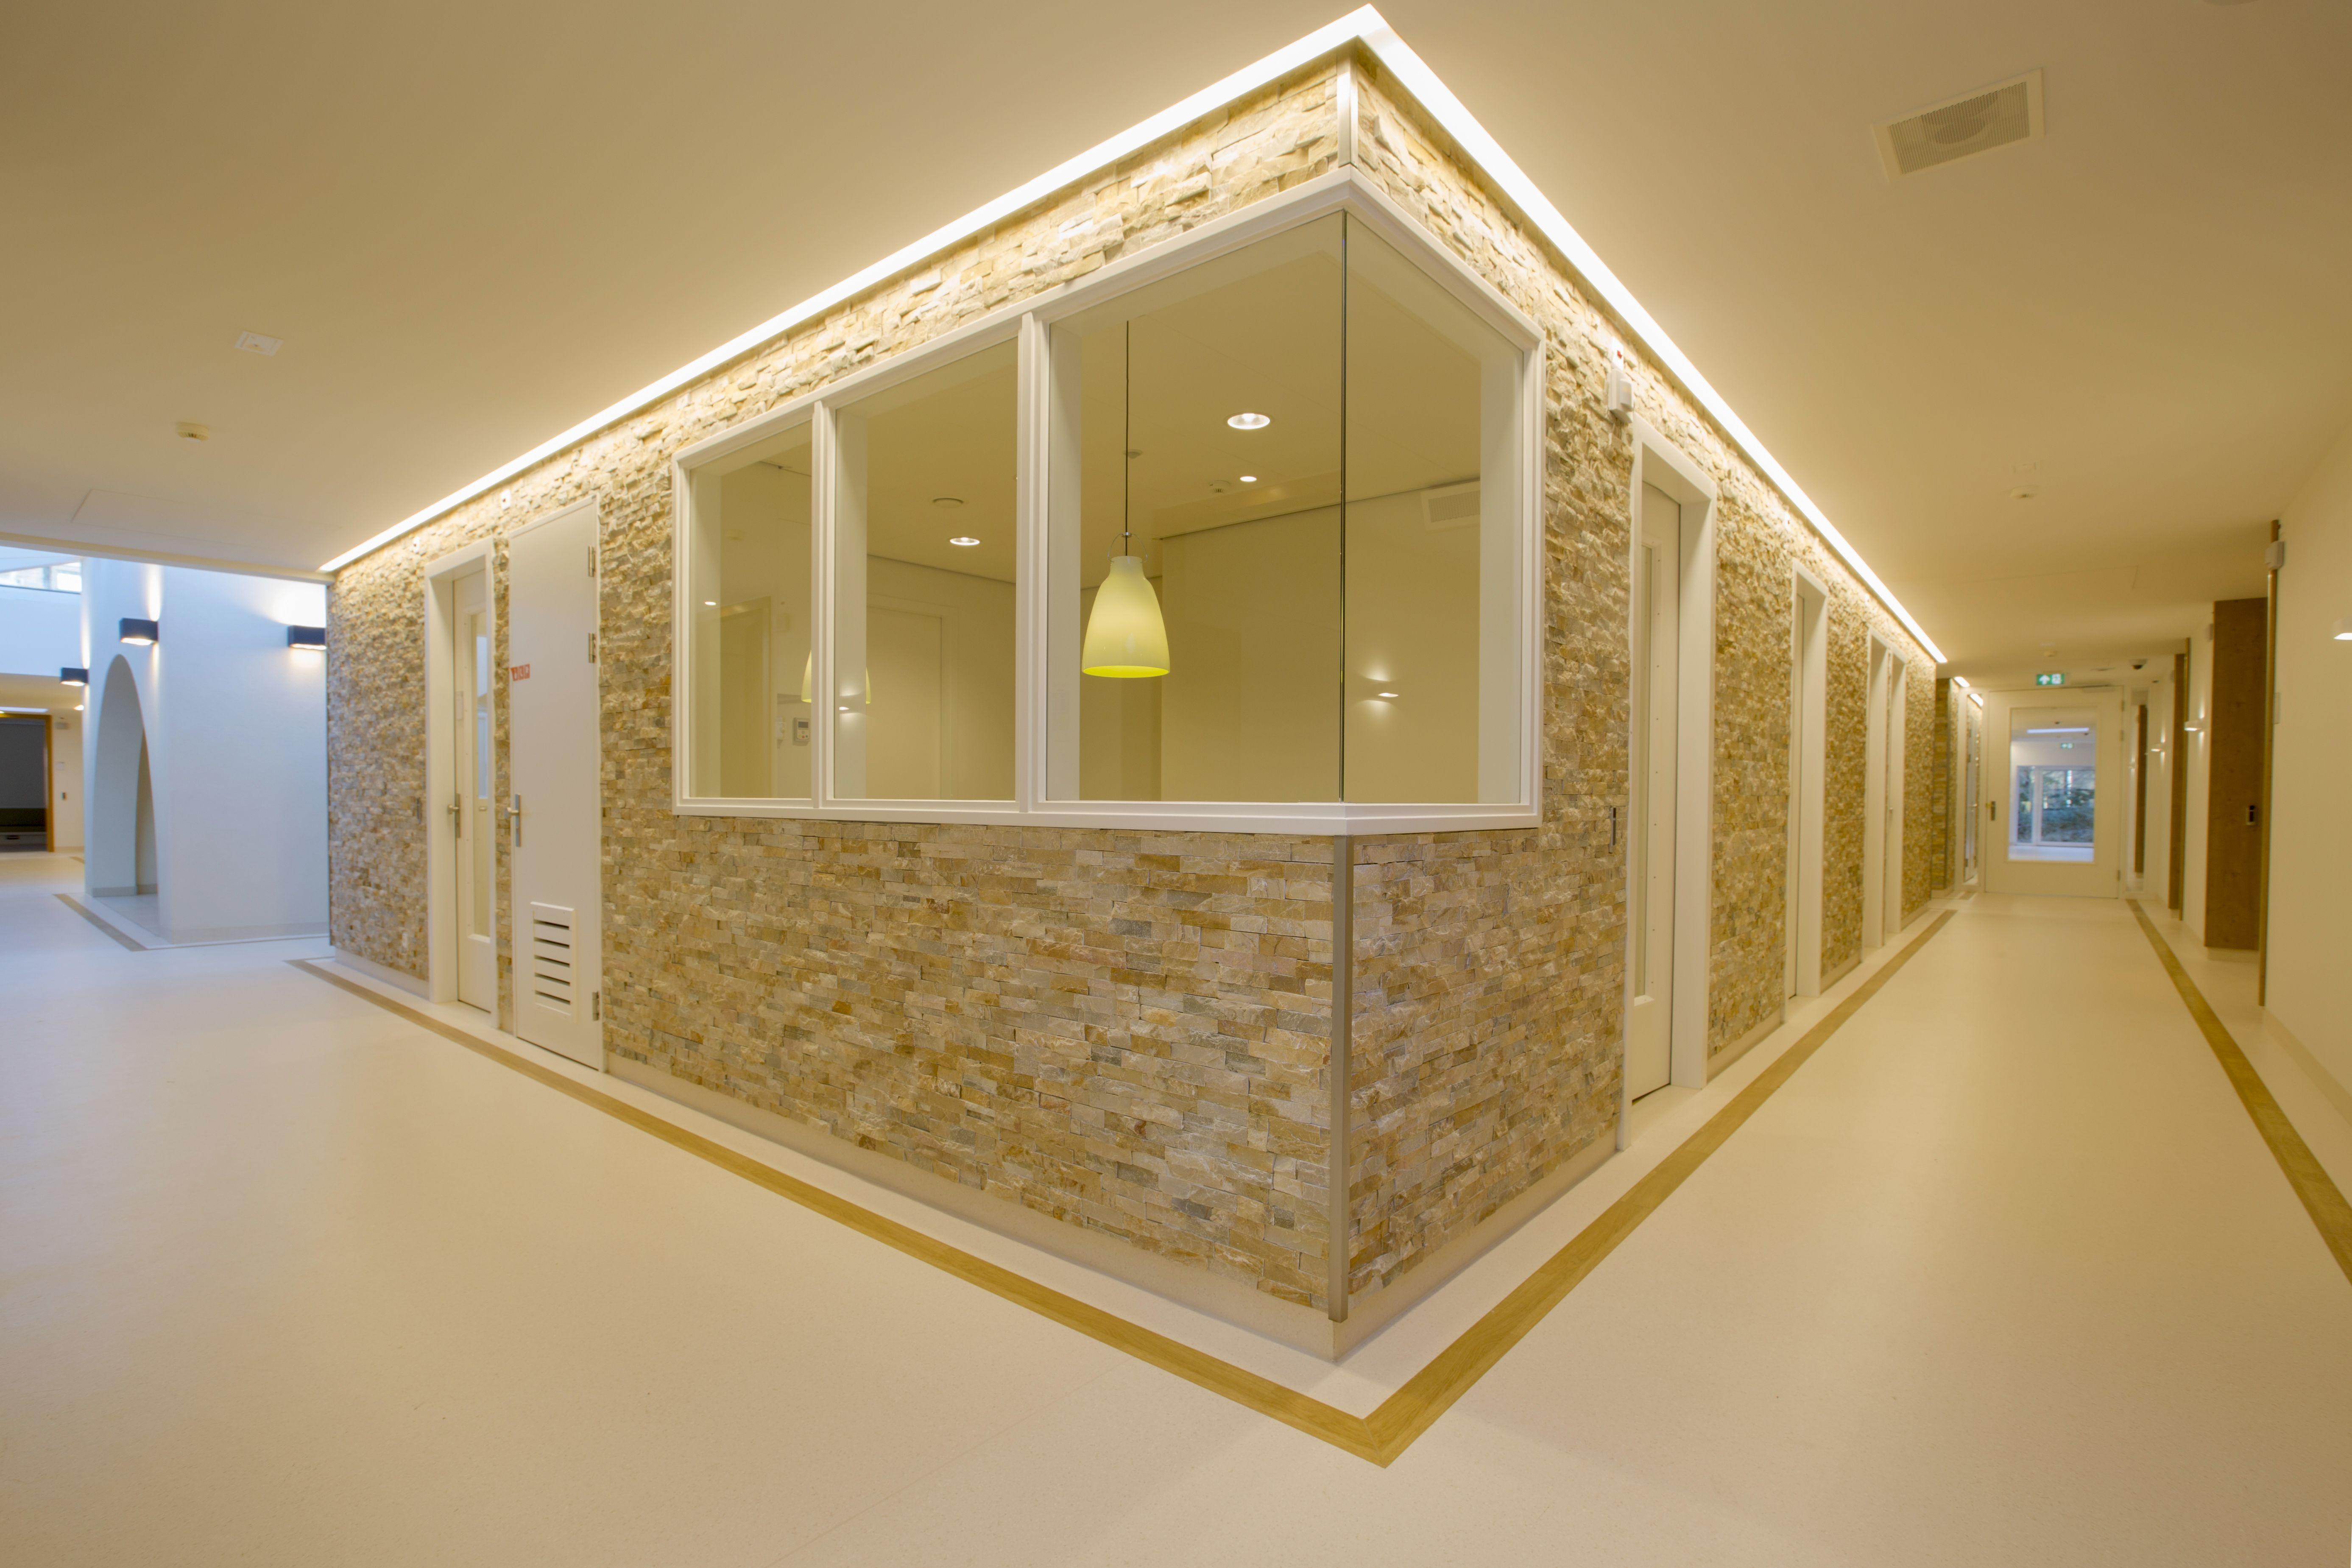 Hospital Interior Design Natural Stone Cladding In Corridor And Led Light CeilingHealing